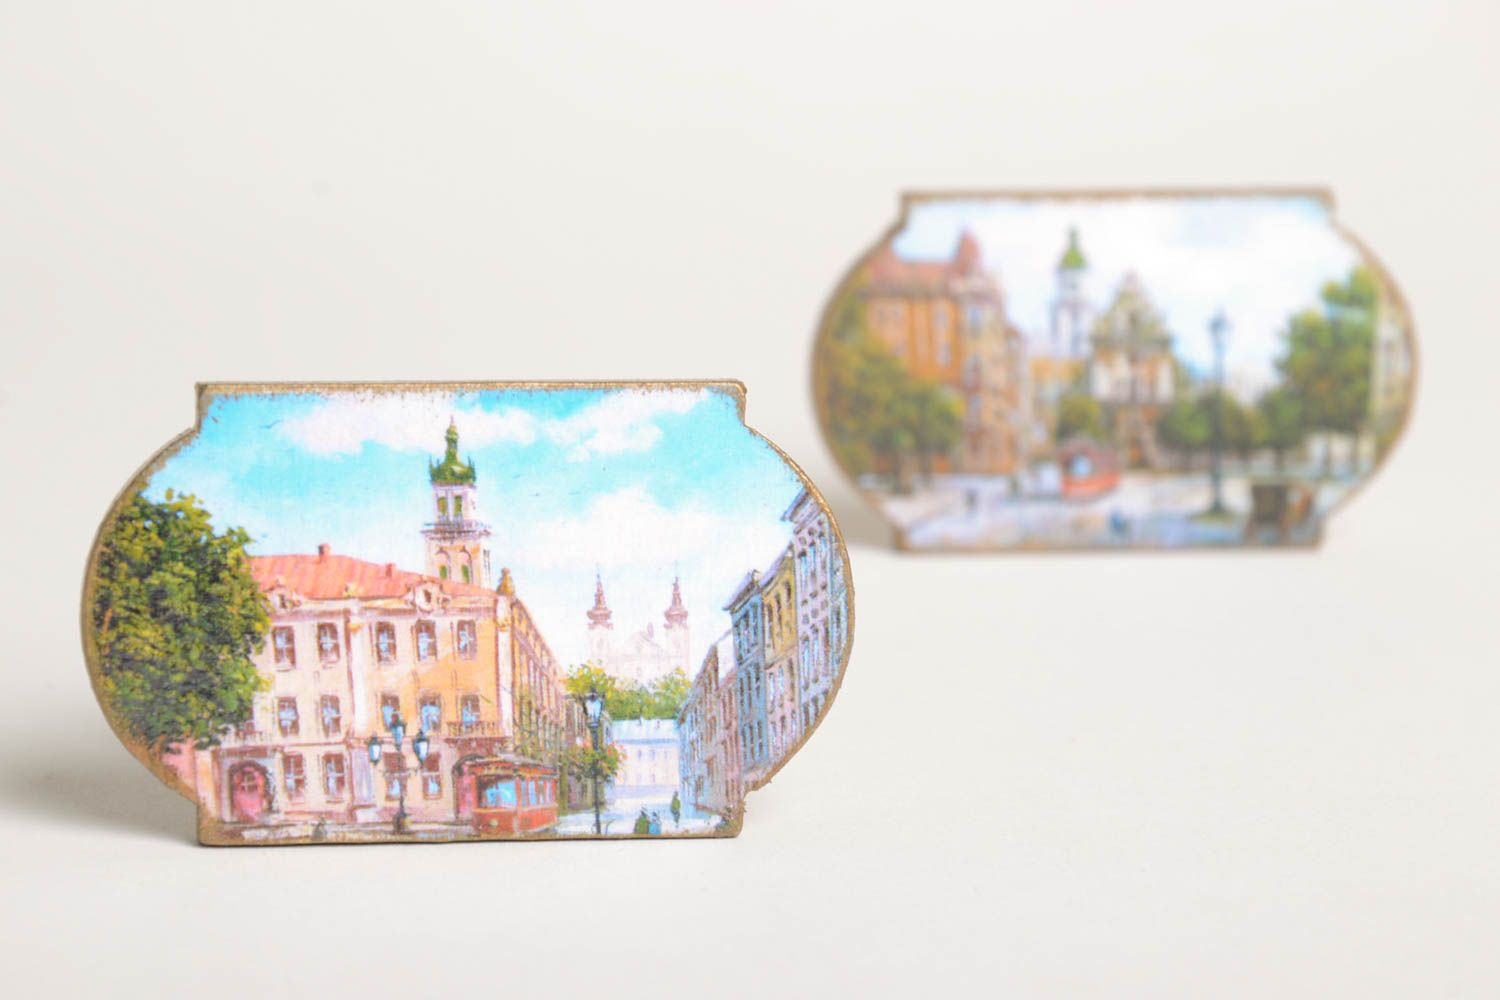 Handmade fridge magnet 2 pieces home decoration small gifts decorative use only photo 2